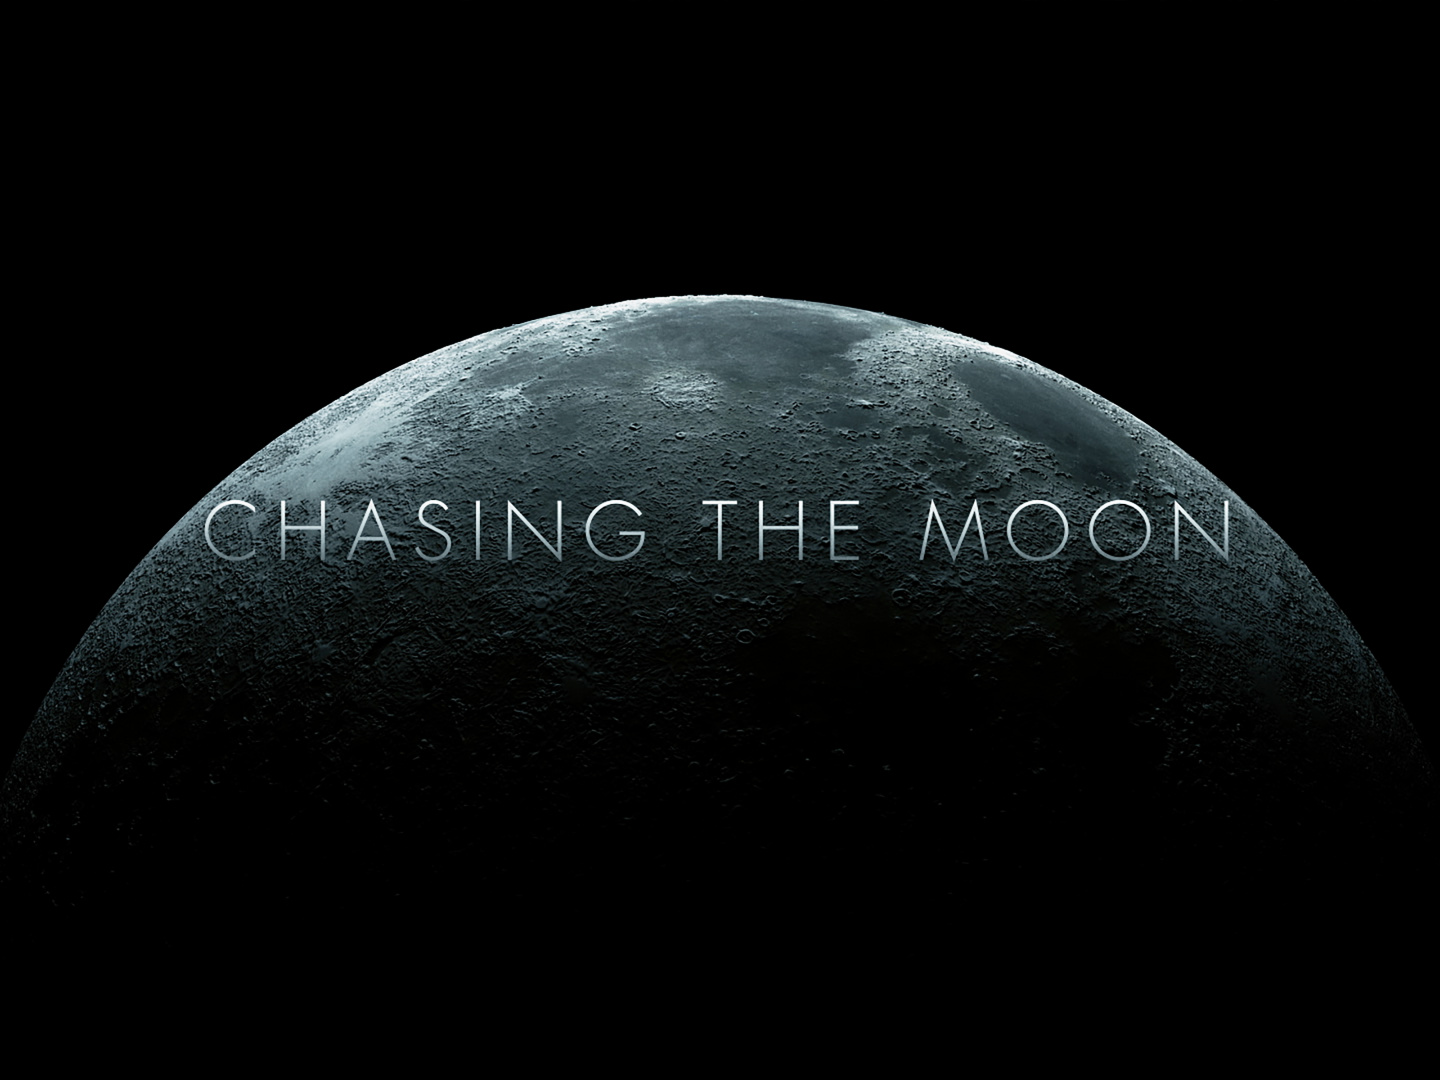 CHASING THE MOON TITLE SEQUENCE Thumbnail